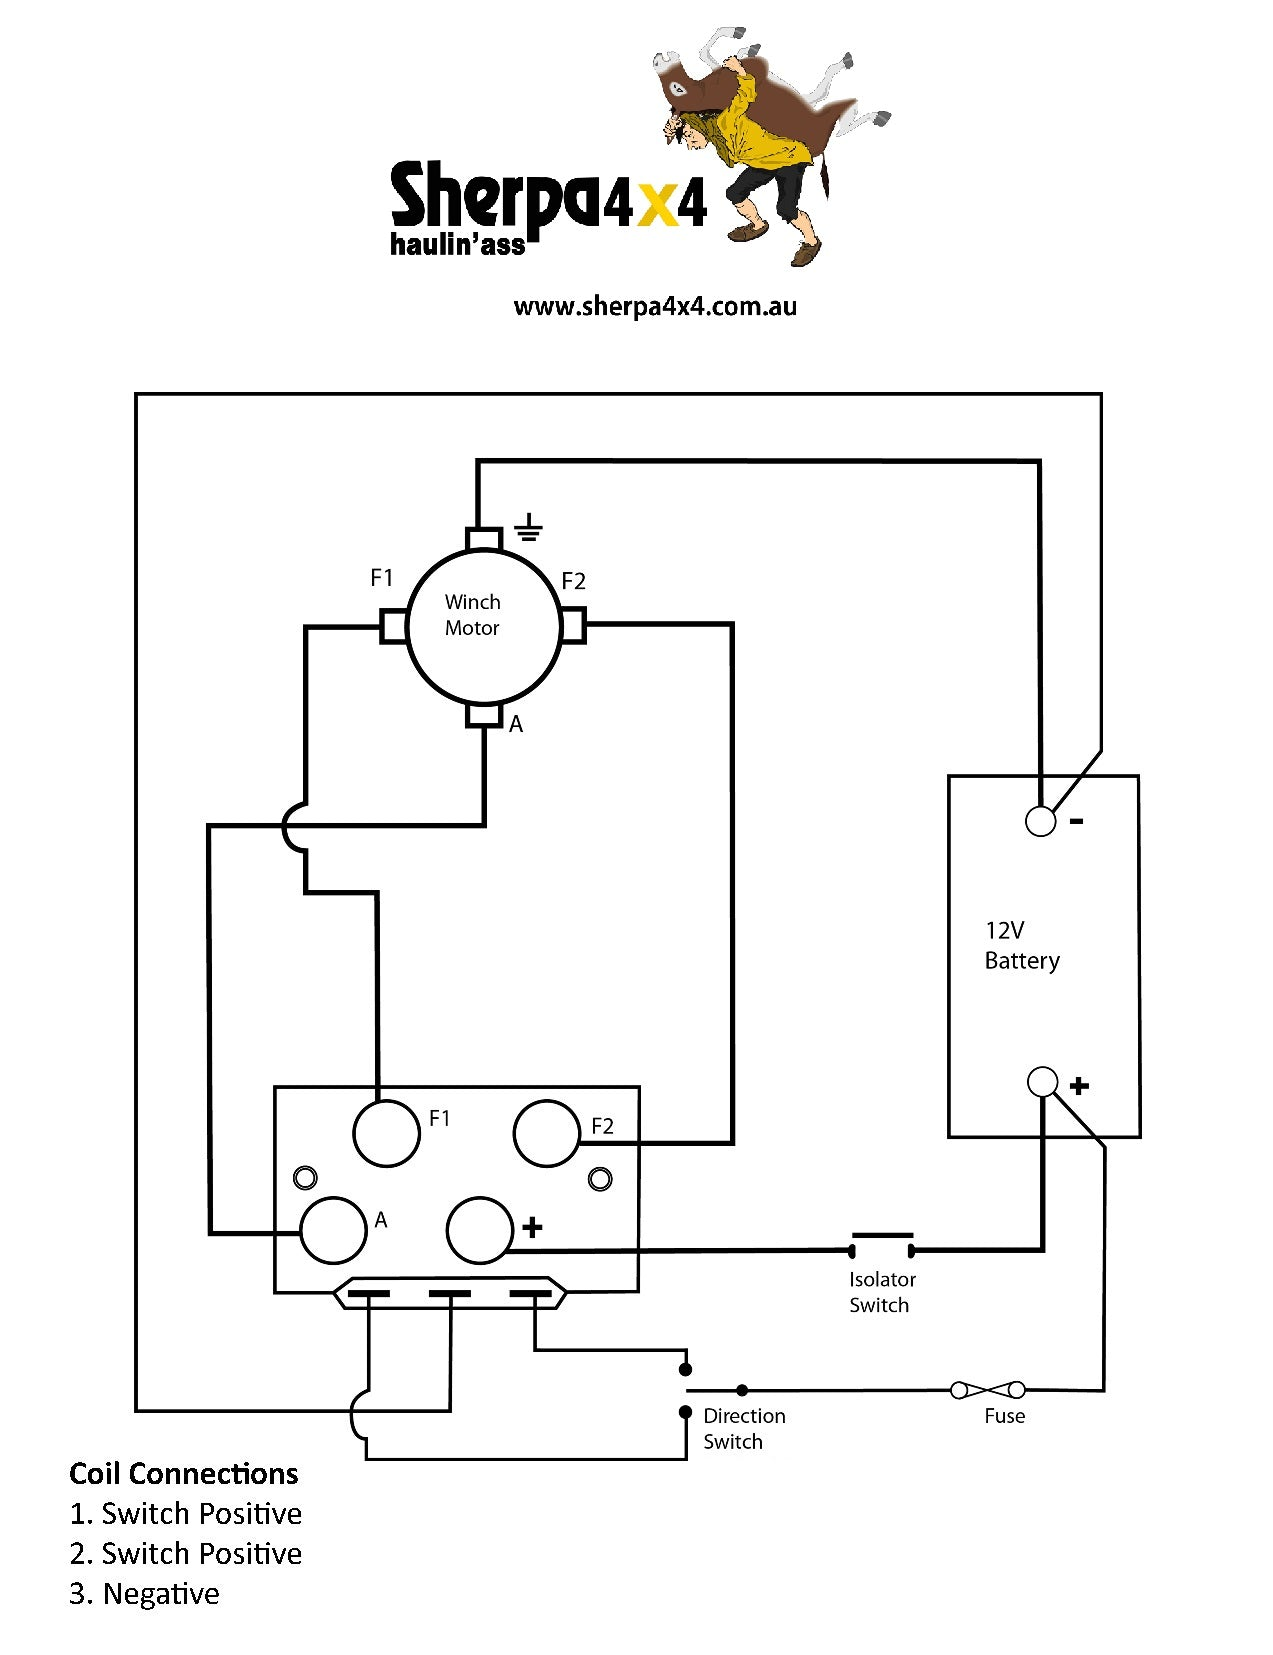 Sherpa_4x4_Winch_Wiring_Diagram?12240005484949772751 data sheets sherpa 4x4 winch wiring diagram solenoid at readyjetset.co